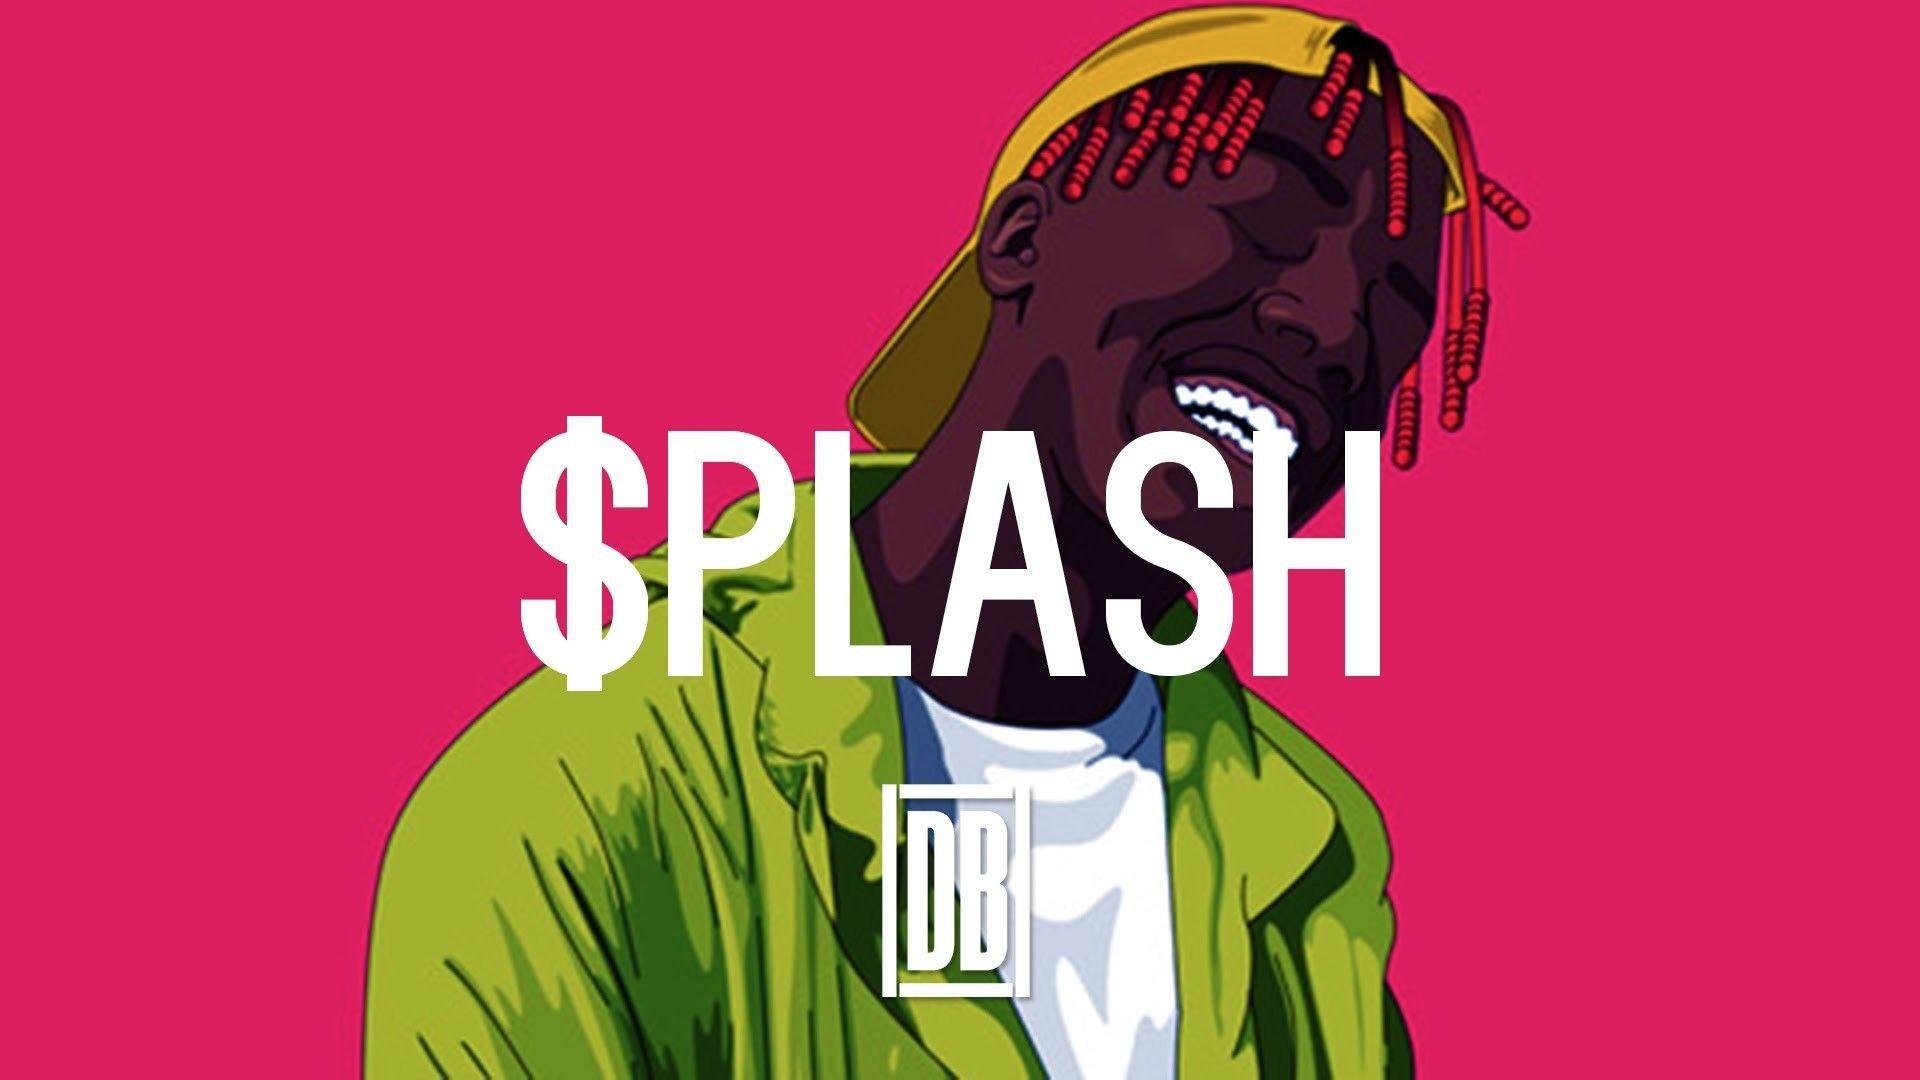 Lil Yachty Wallpapers